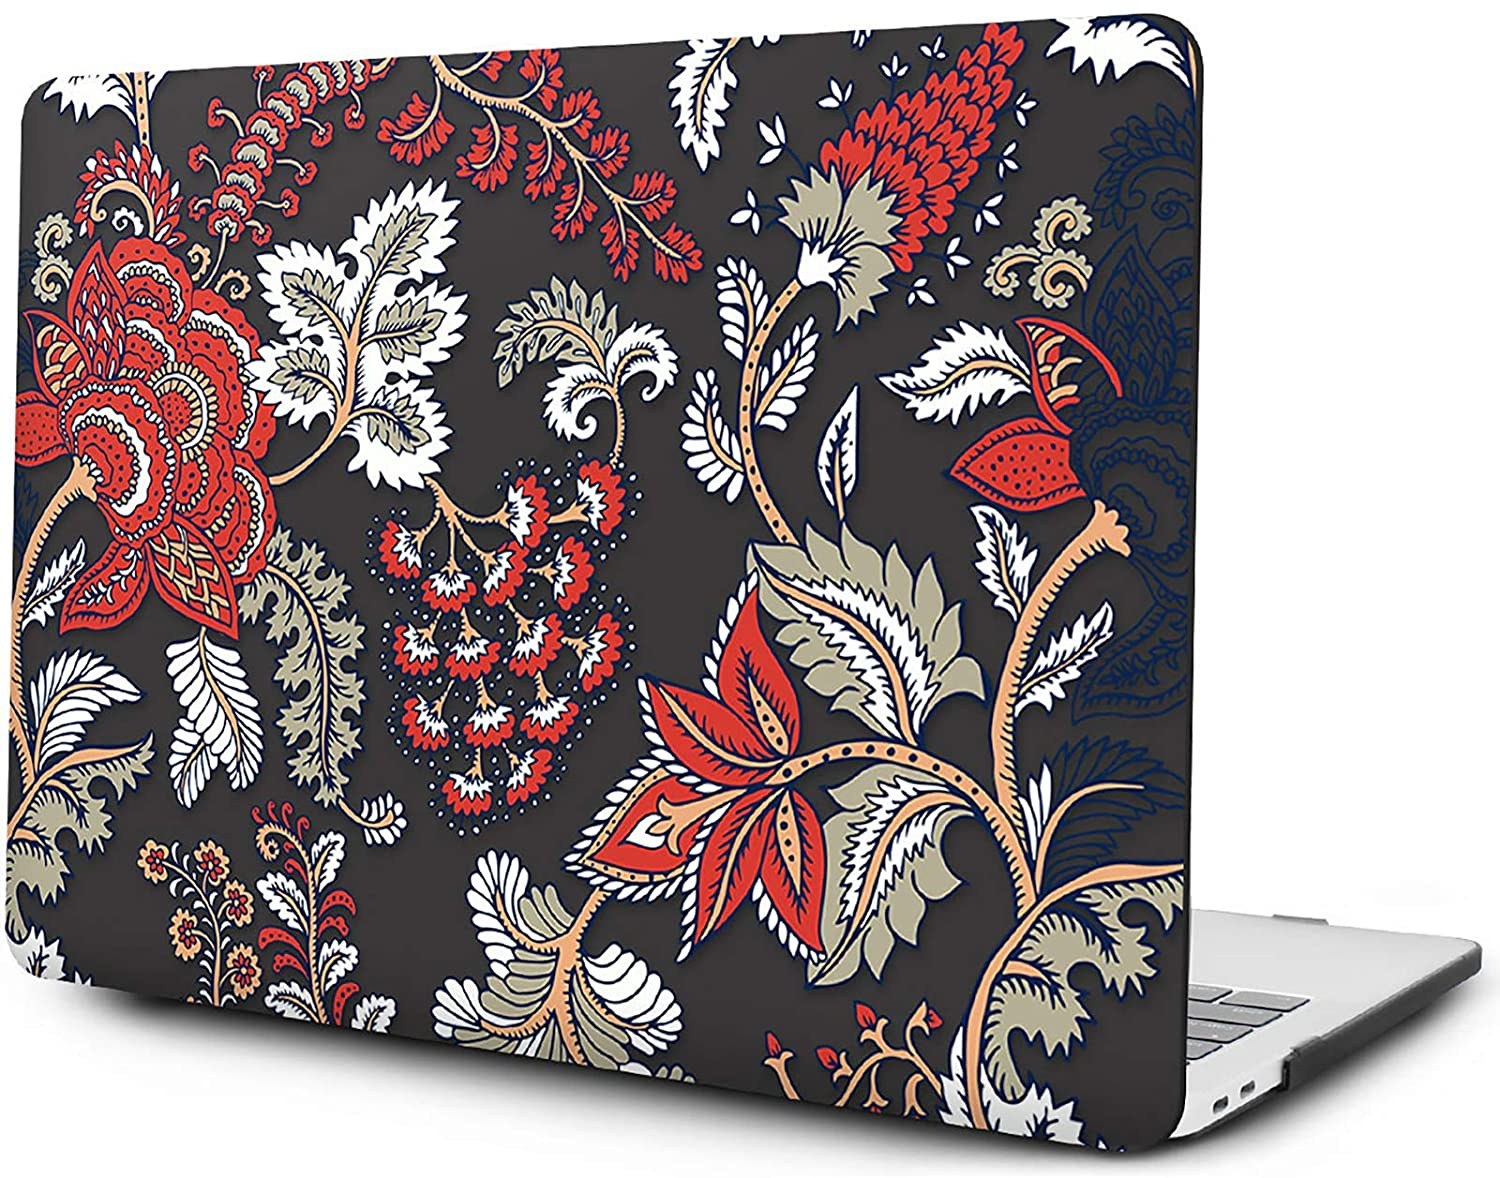 OneGet MacBook Air 13 Inch Case 2018 A1932 Painting Flower Pattern Plastic Hard Shell Cover with HD Screen Protector & TPU Keyboard Cover for 2018 MacBook Air 13 A1932 with Touch ID (F24)